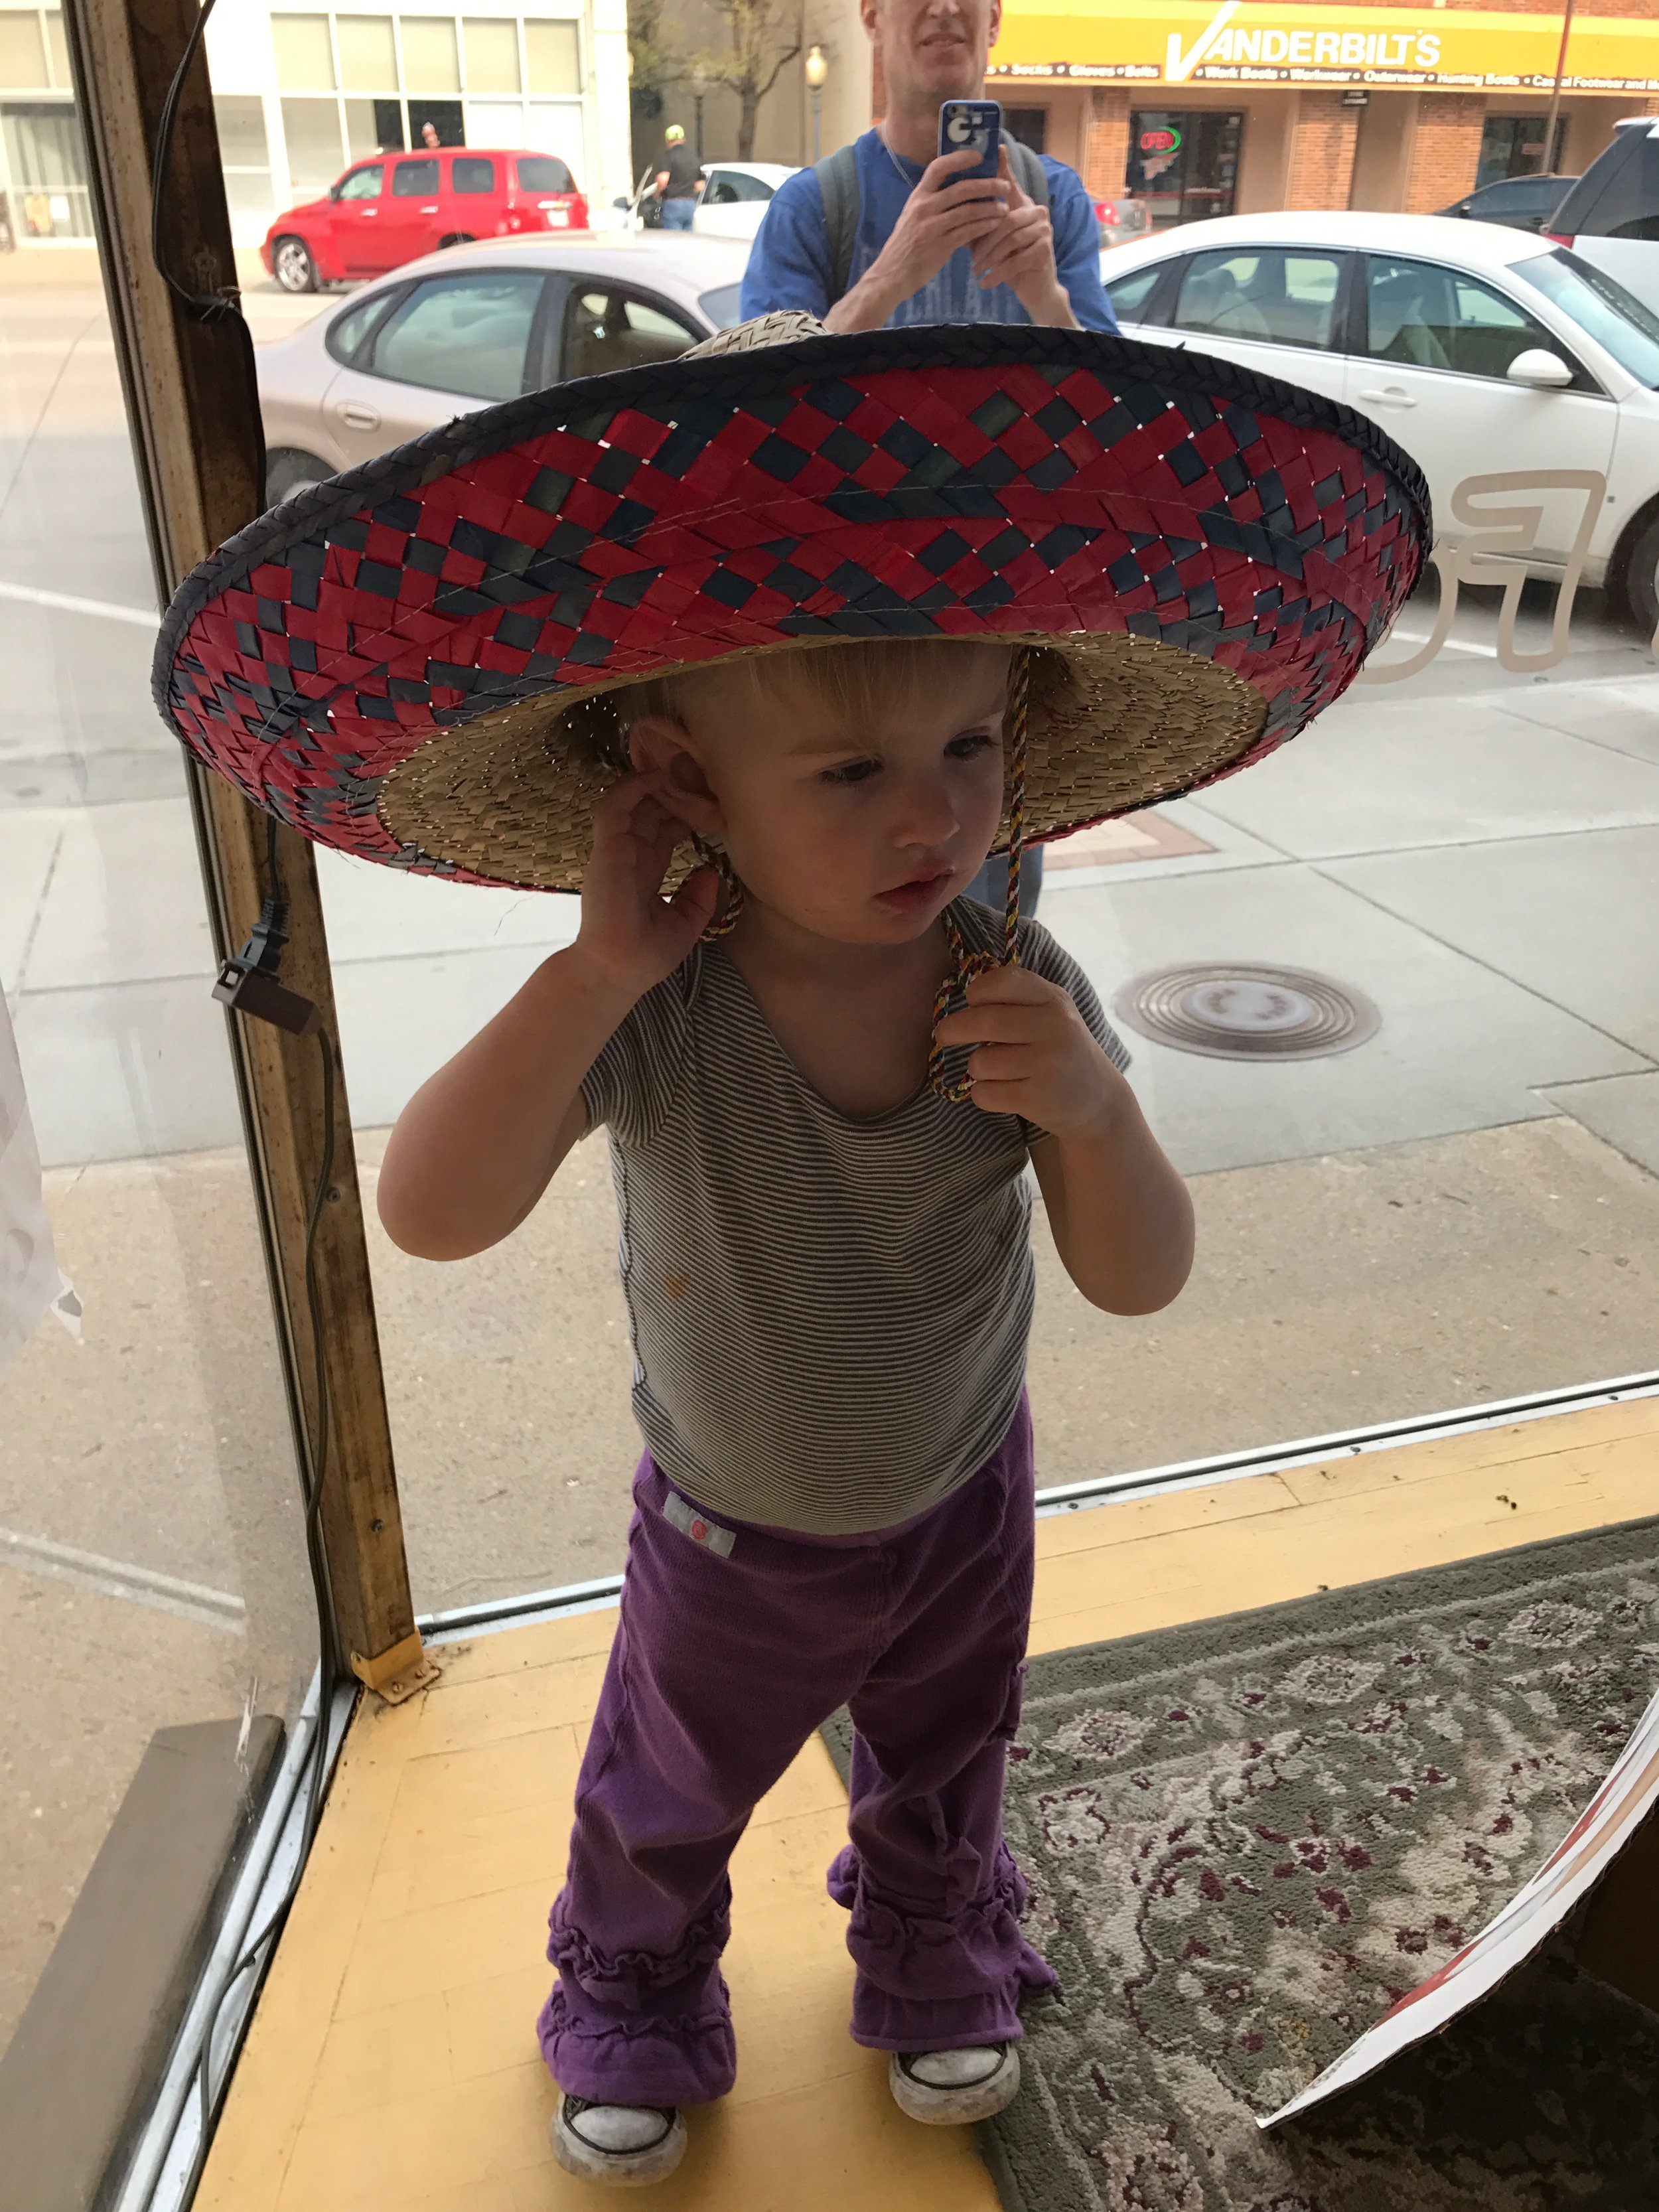 As I said, she loves to climb. And try on hats in windows.